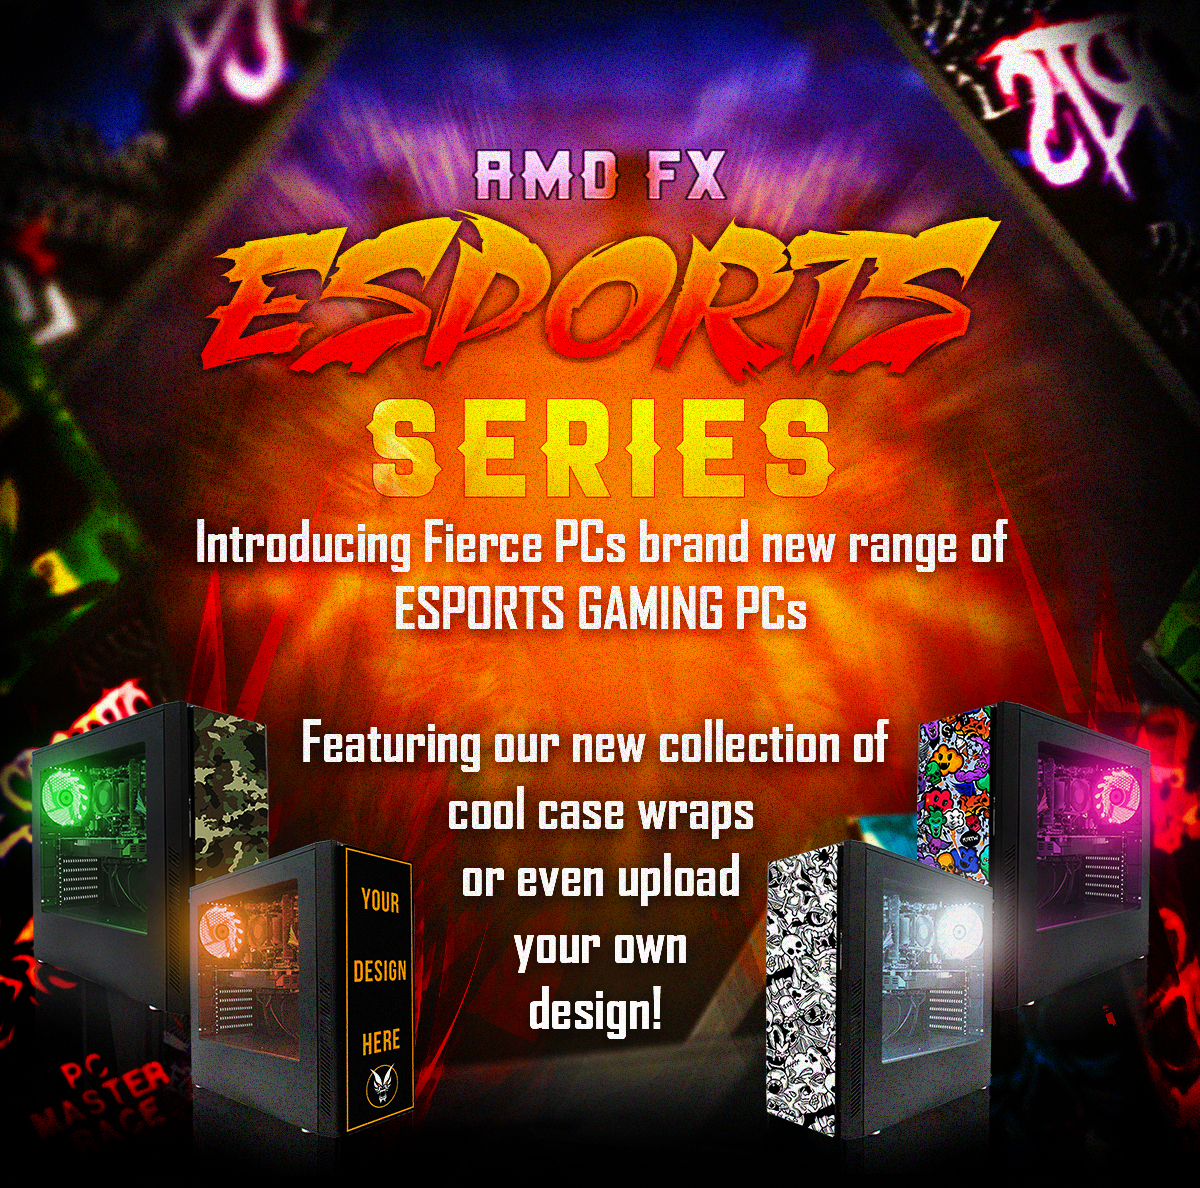 Introducing Fierce PCs brand new range of eSports gaming PCs. Featuring our new collection of cool case wraps. ESPORTS AMD FX SERIES